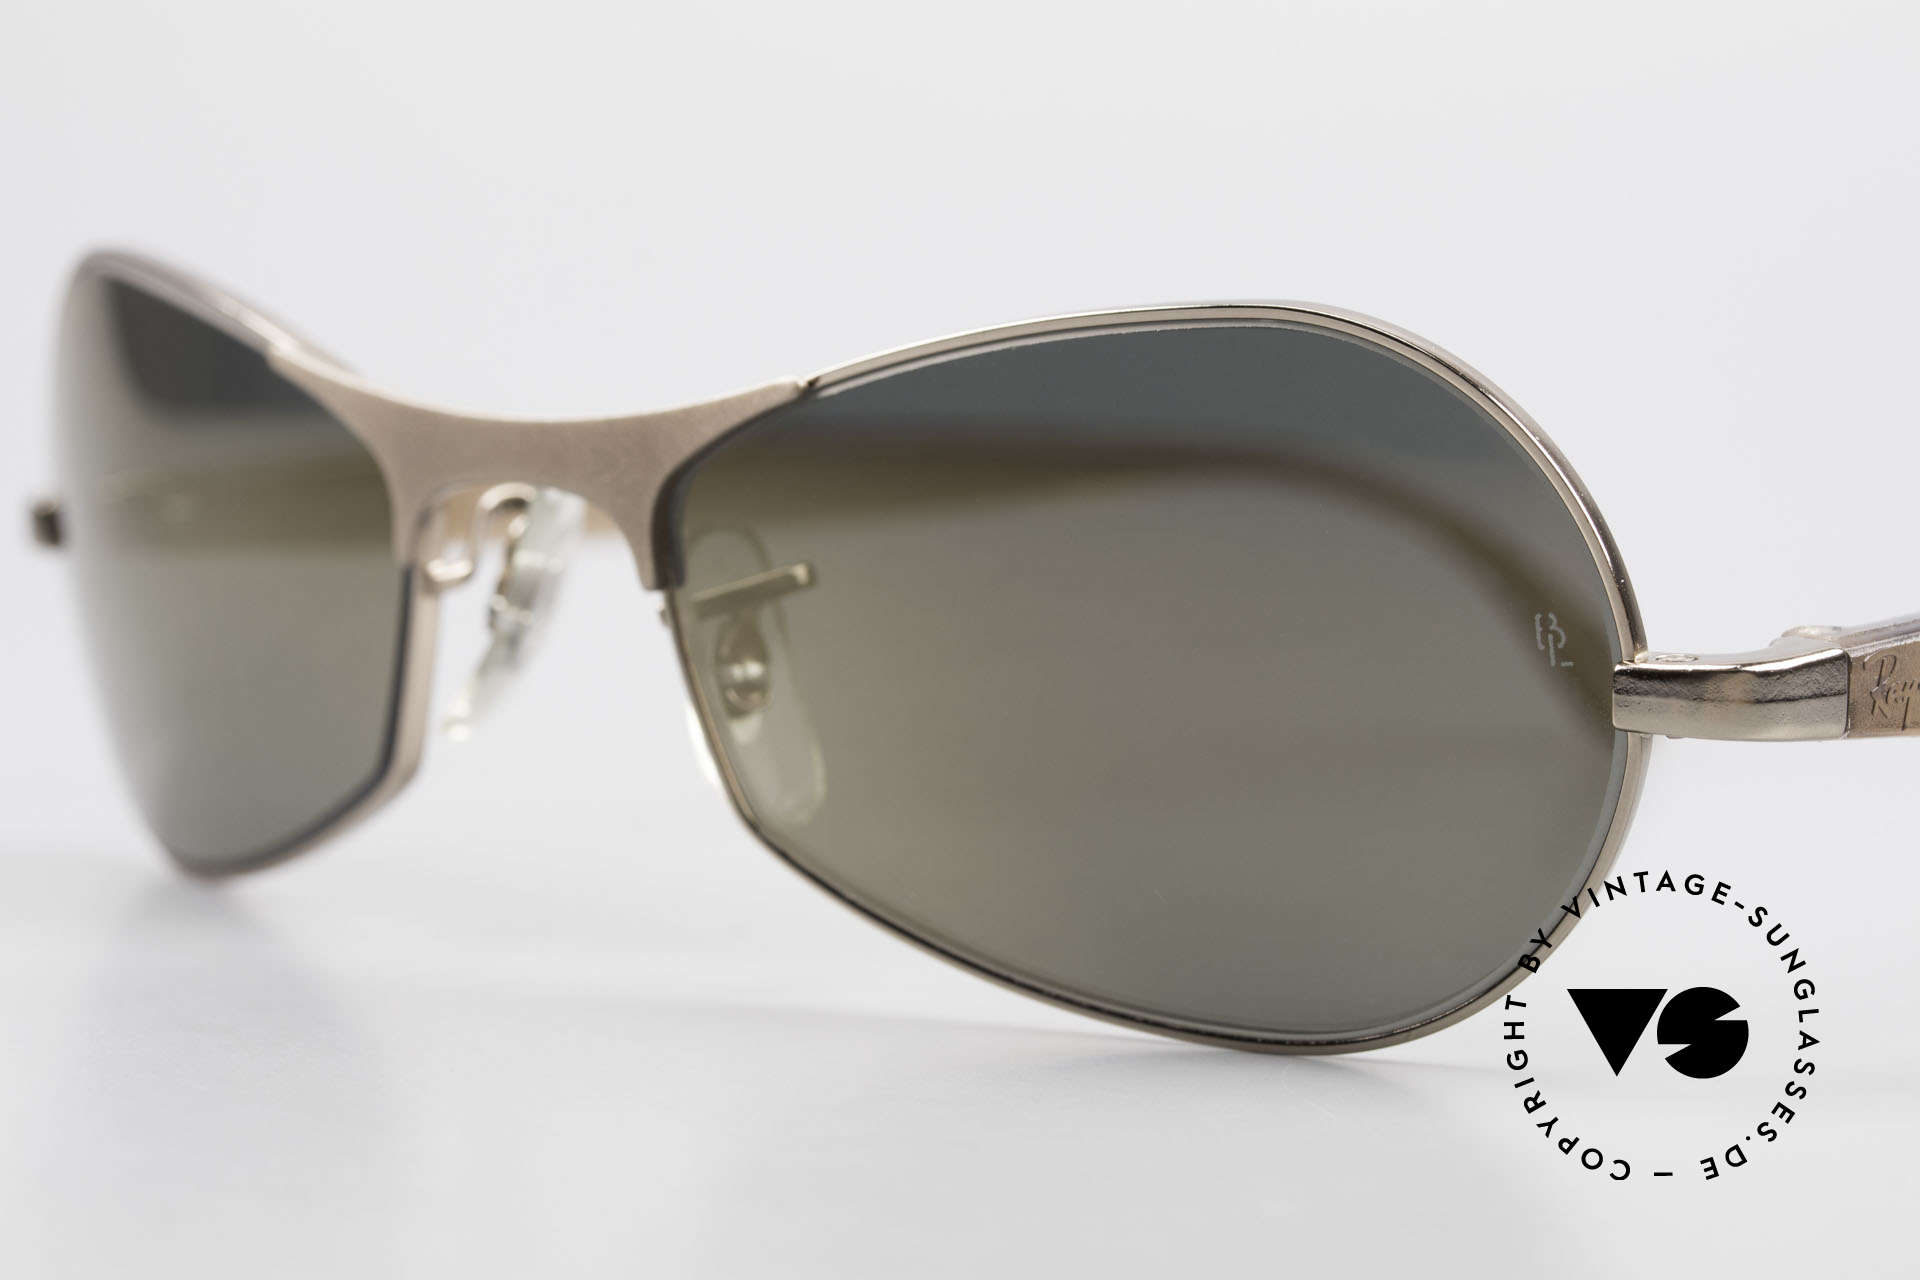 Ray Ban Sidestreet Infinity Gold Mirrored USA Ray-Ban B&L, very special shades, since a piece of economic history, Made for Men